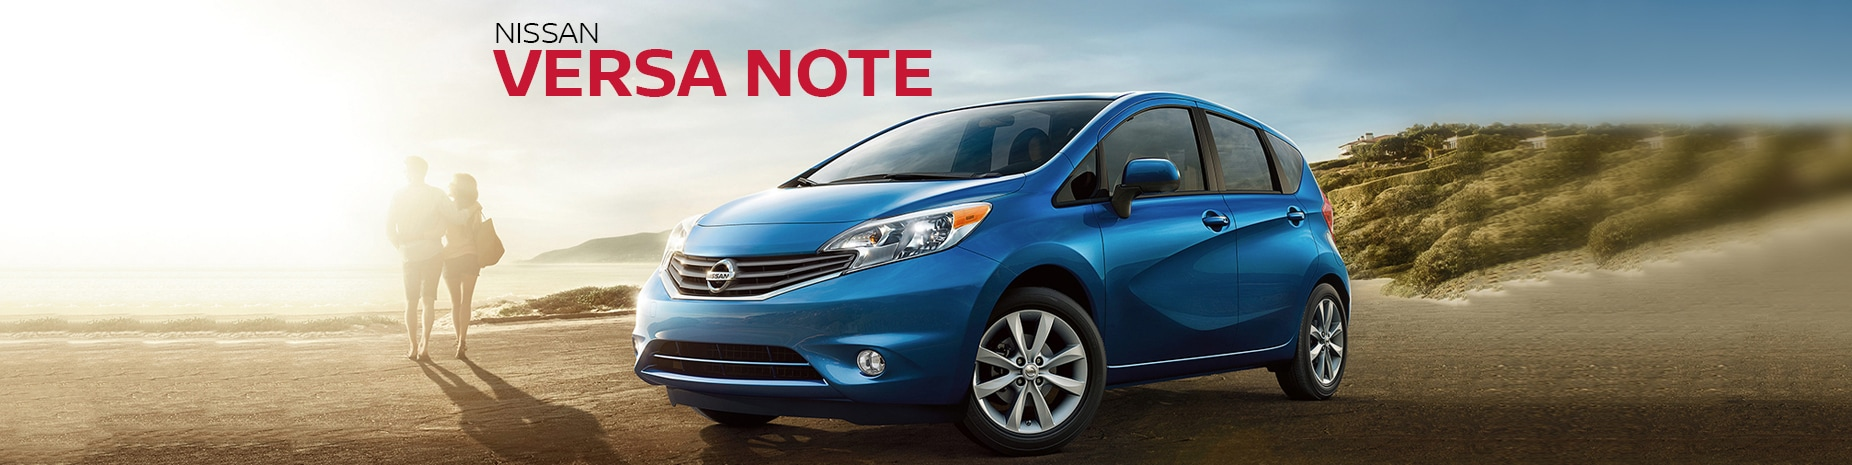 new nissan versa note for sale used versa note for sale. Black Bedroom Furniture Sets. Home Design Ideas